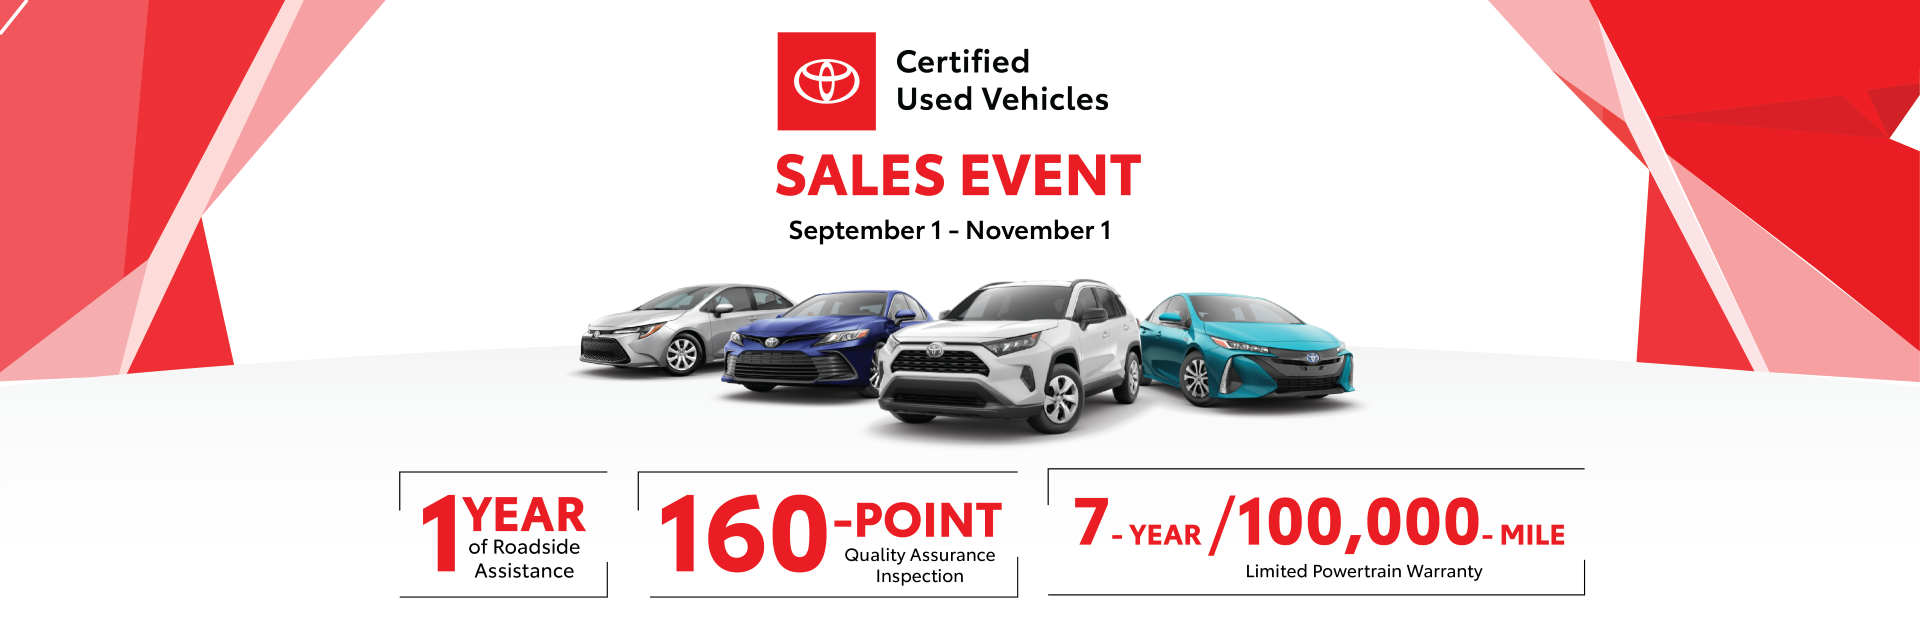 Toyota Certified Used Vehicle Sales Event, valid from September 1st through November 1st